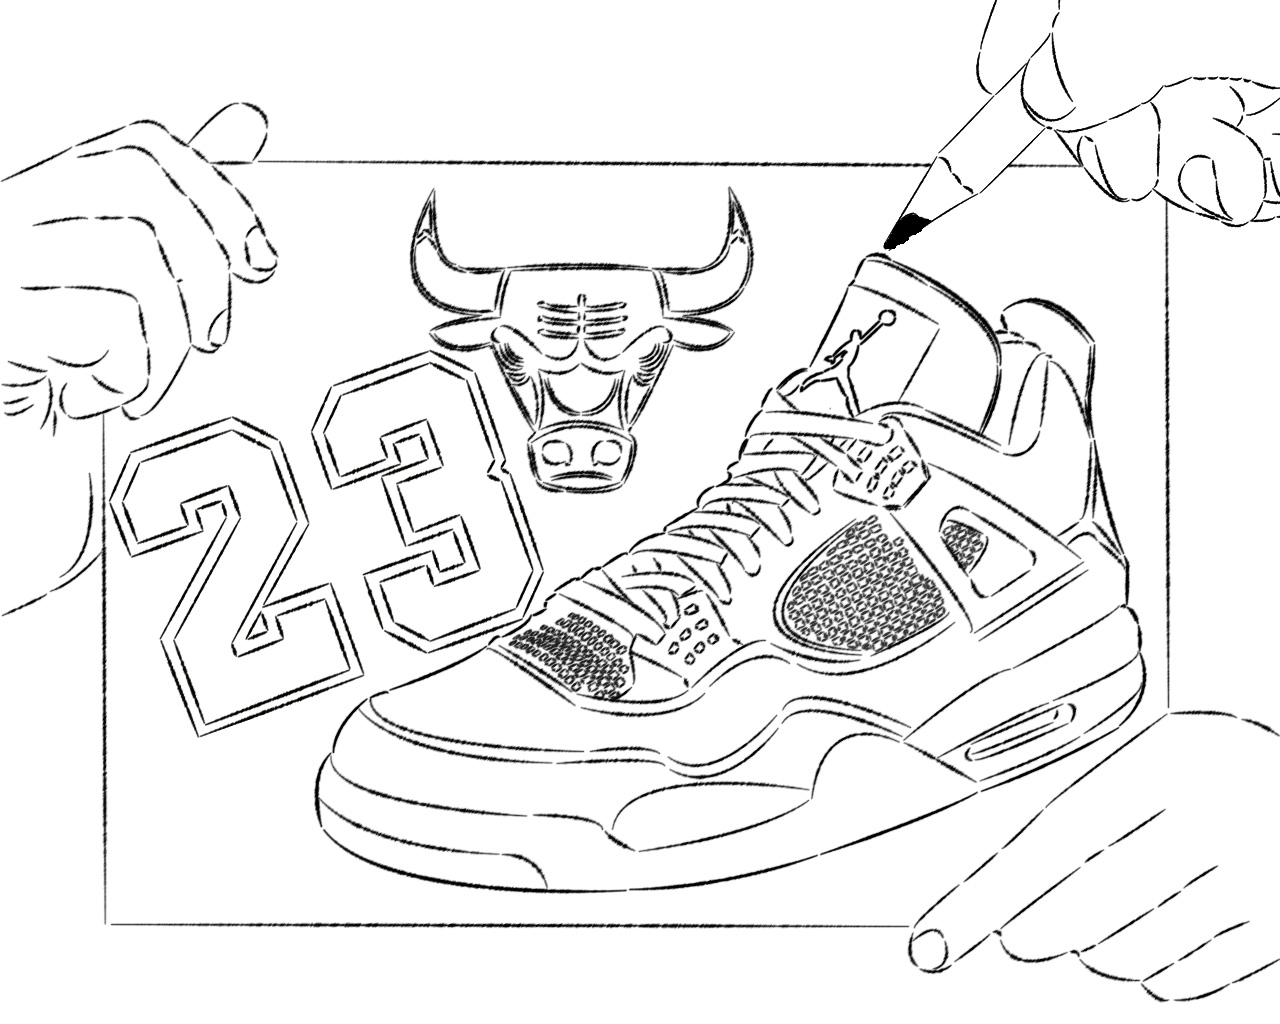 How To Draw Jordan Retro 13 Air By Roundryan Coloring